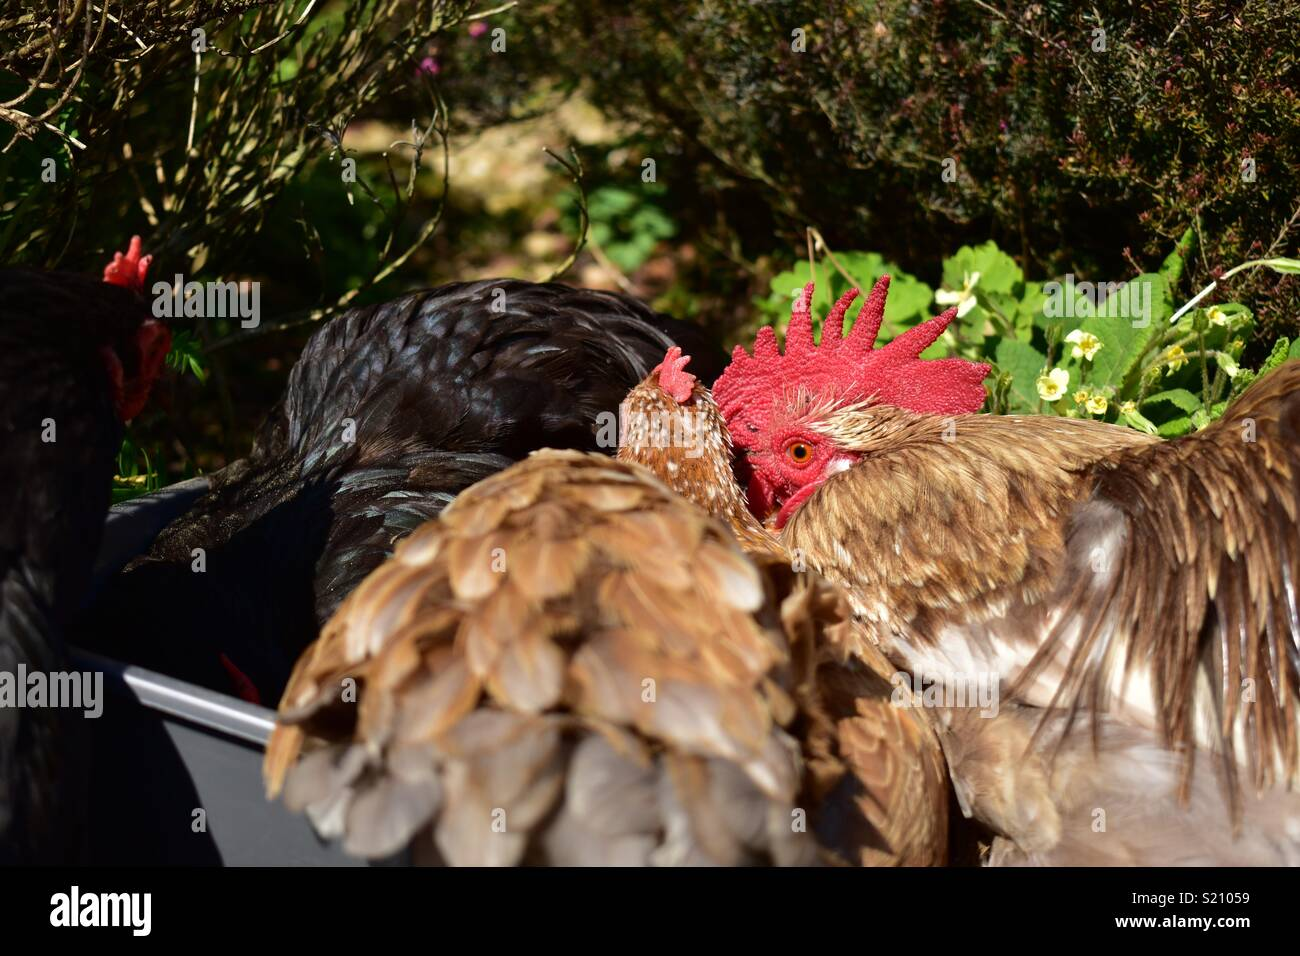 Chickens dust bathing in the garden - Stock Image